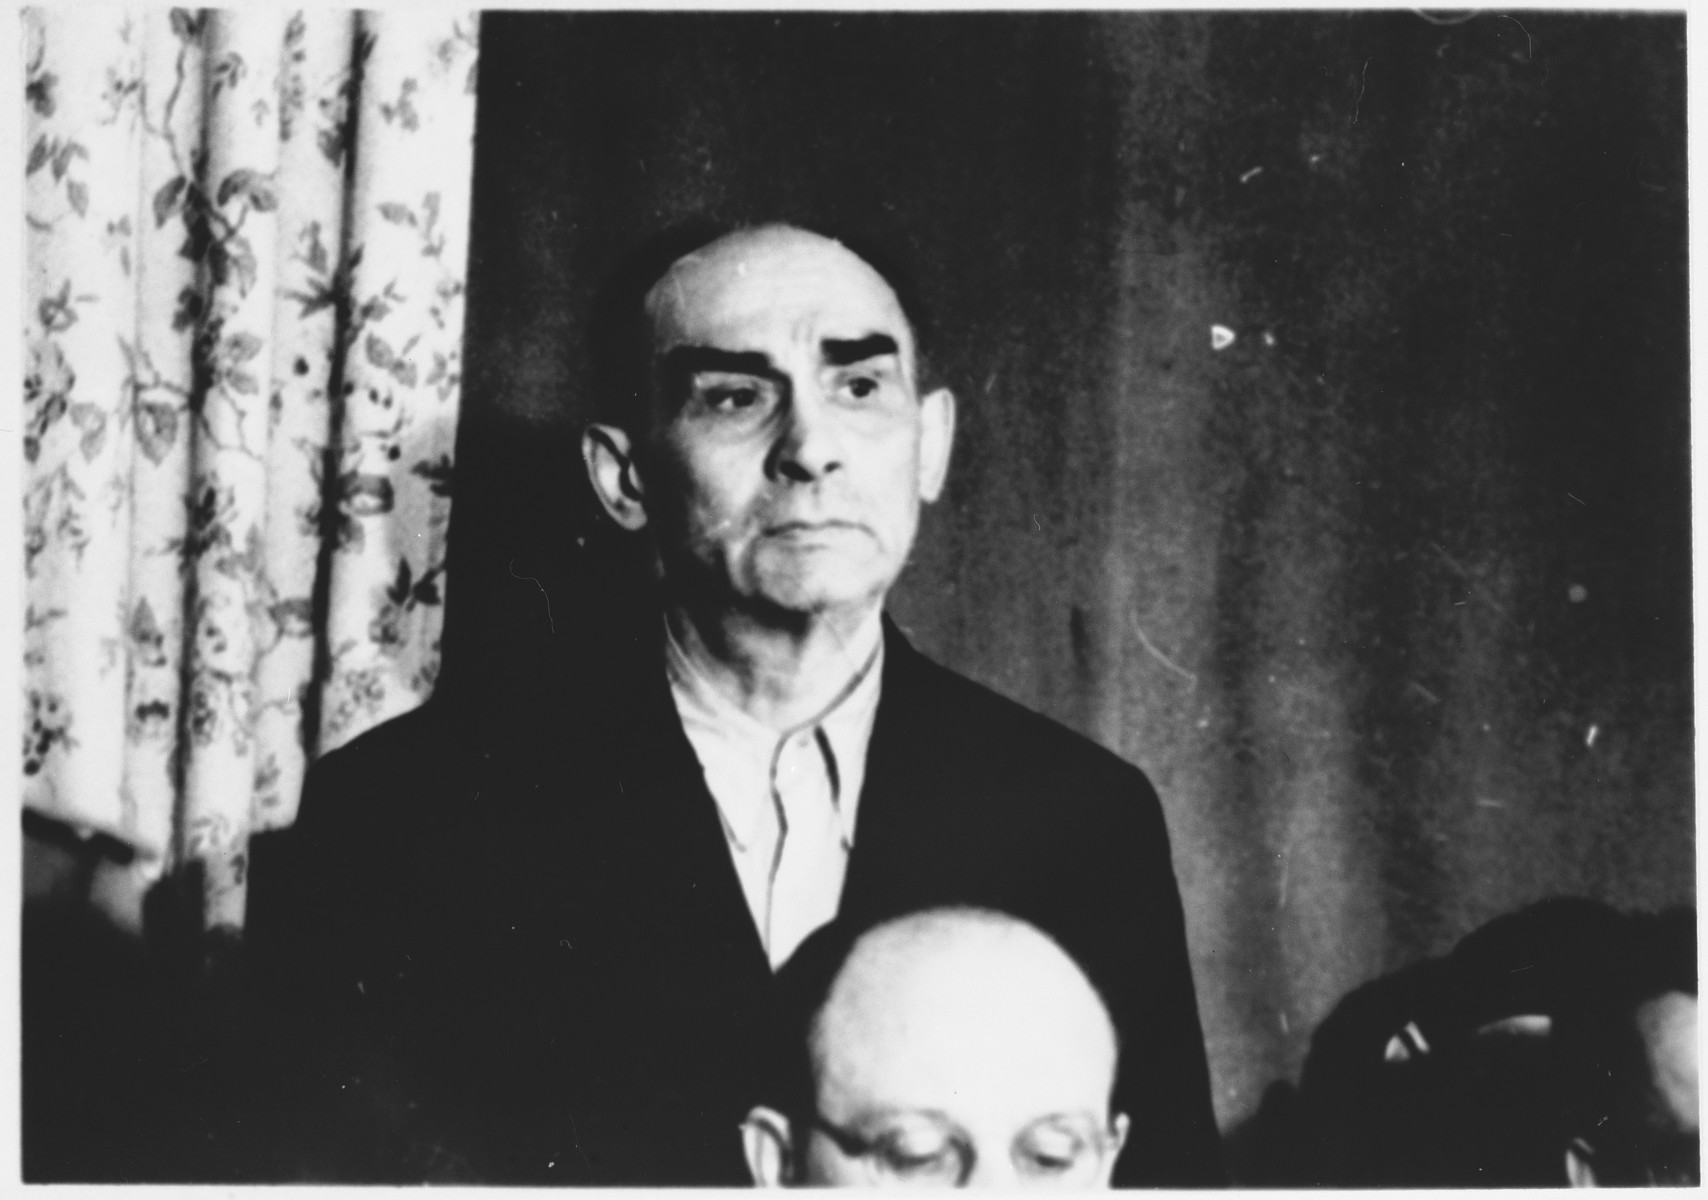 Defendant Karl Zander at the Sachsenhausen concentration camp war crimes trial in Berlin.